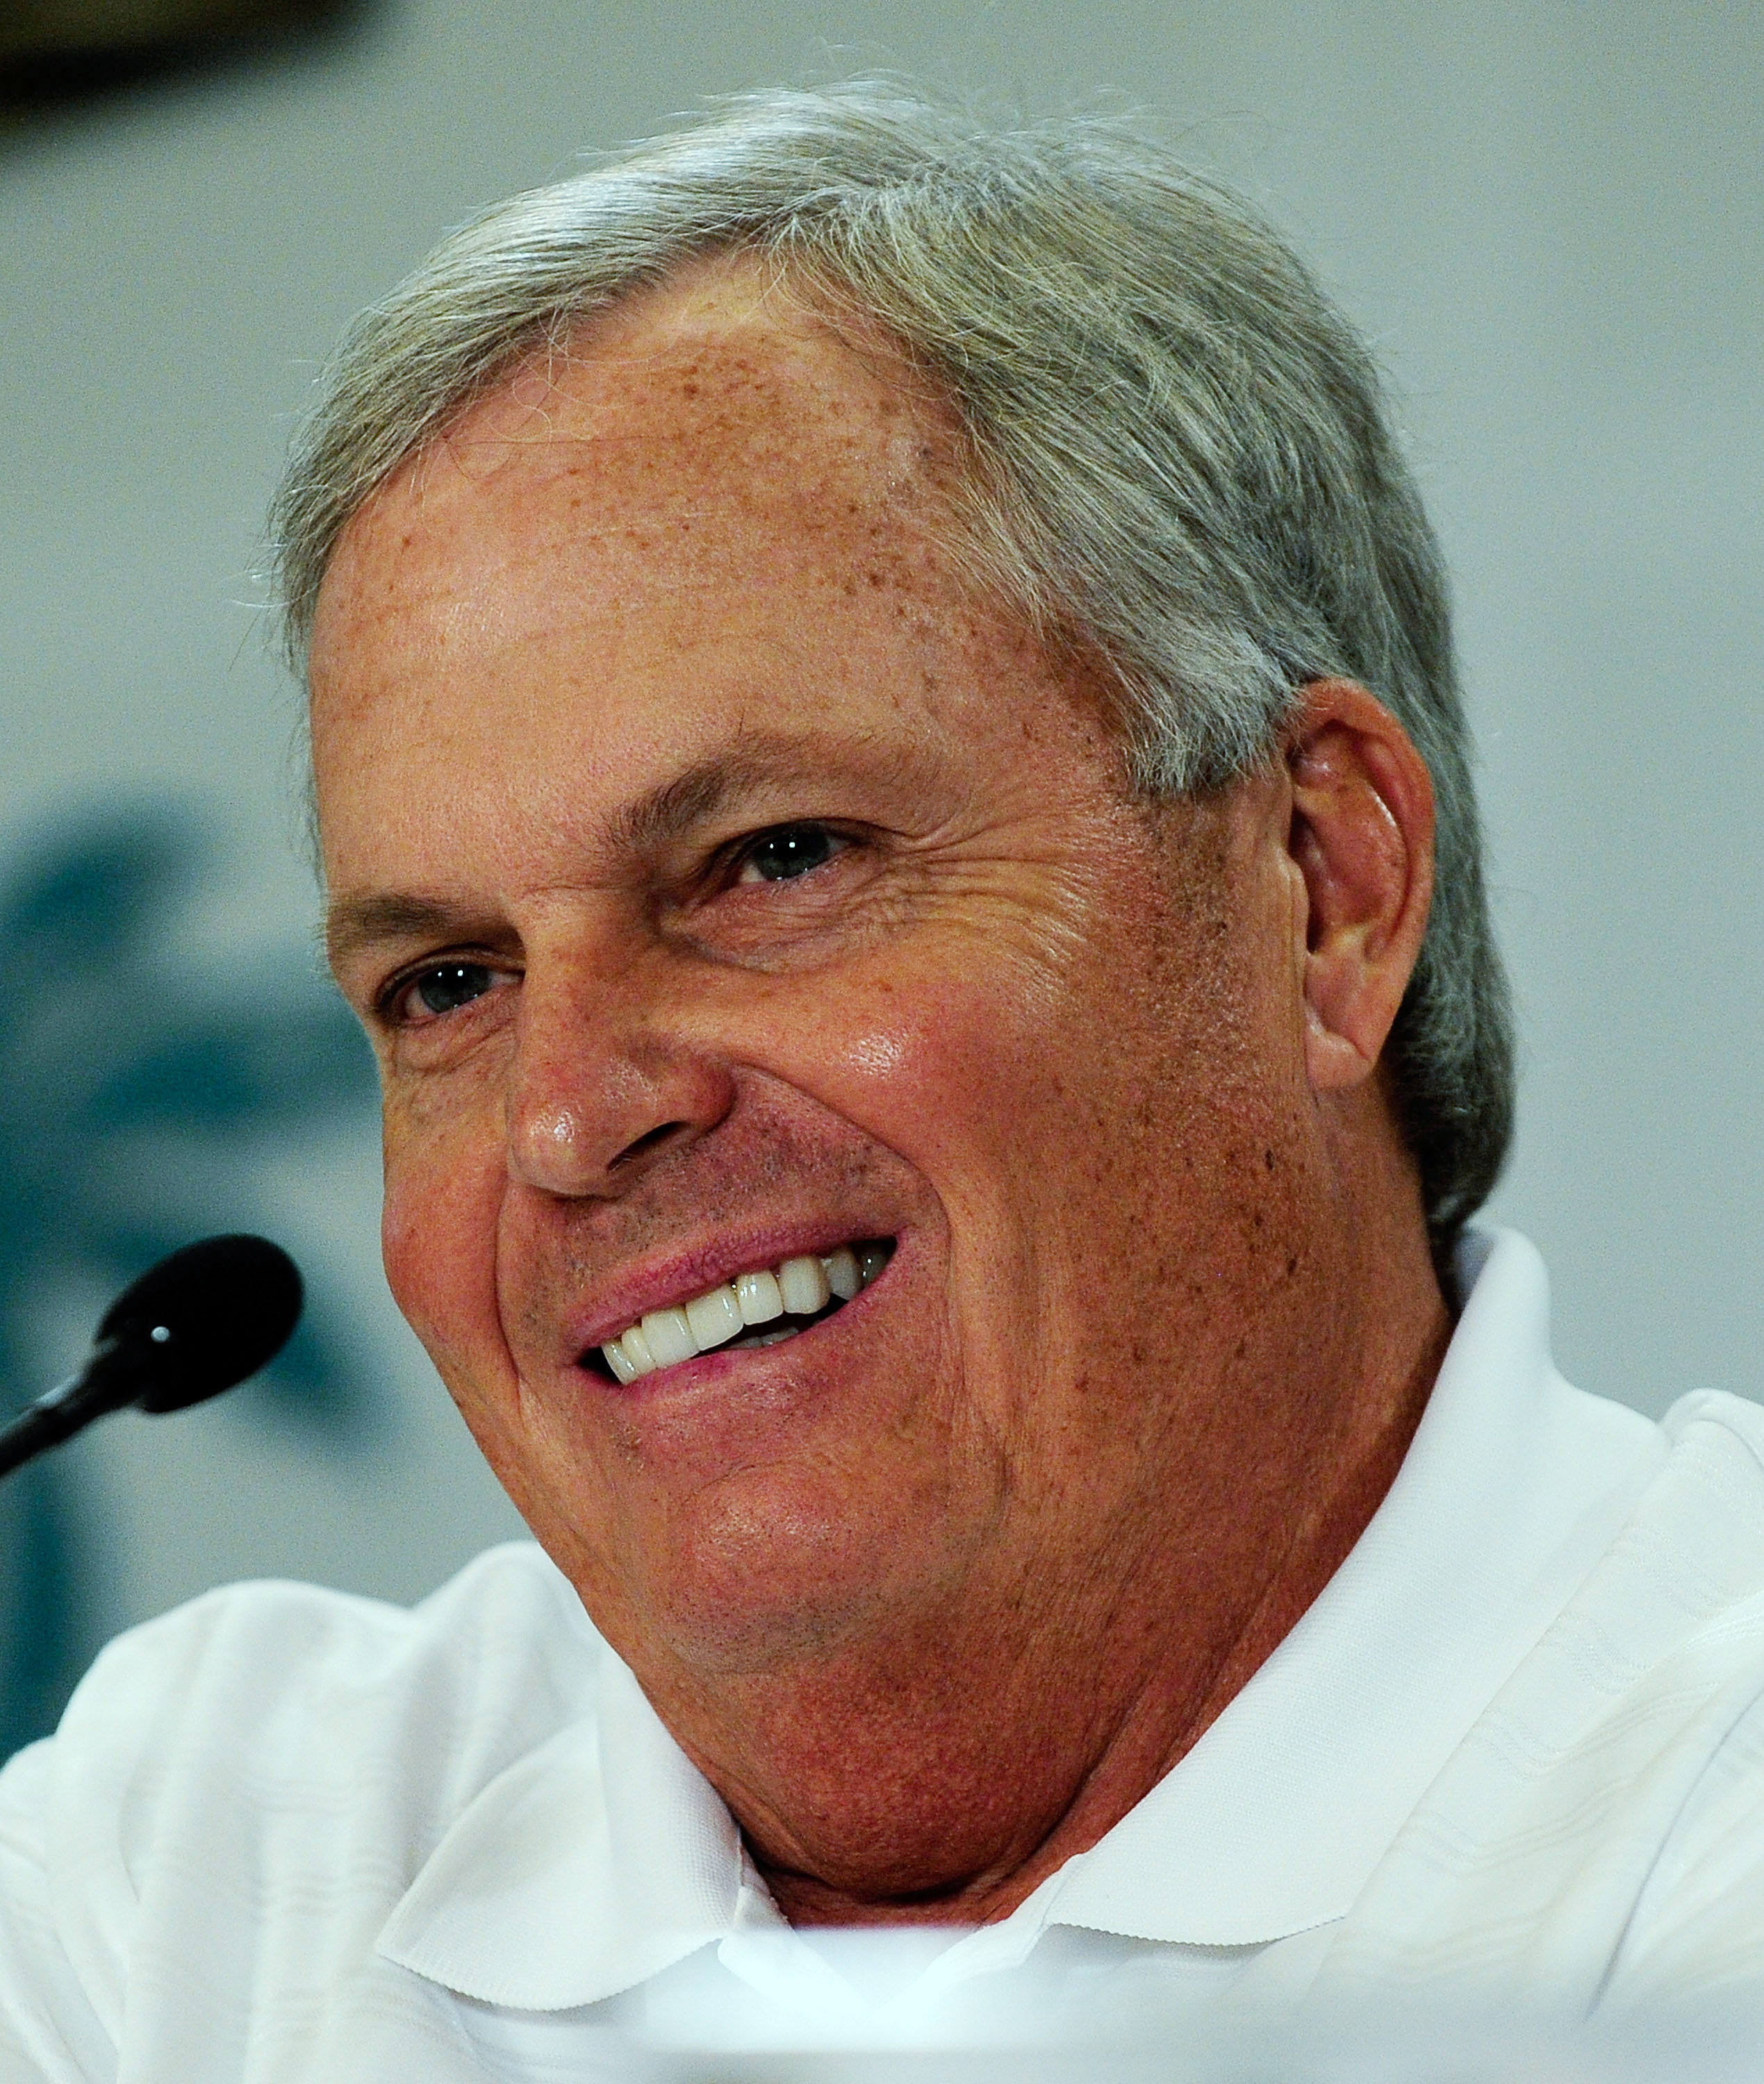 CORAL GABLES, FL - NOVEMBER 19:  Team owner Rick Hendrick speaks to the media during the NASCAR Championship Contenders  Press Conference on November 19, 2009 in Coral Gables, Florida.  (Photo by Sam Greenwood/Getty Images for NASCAR)